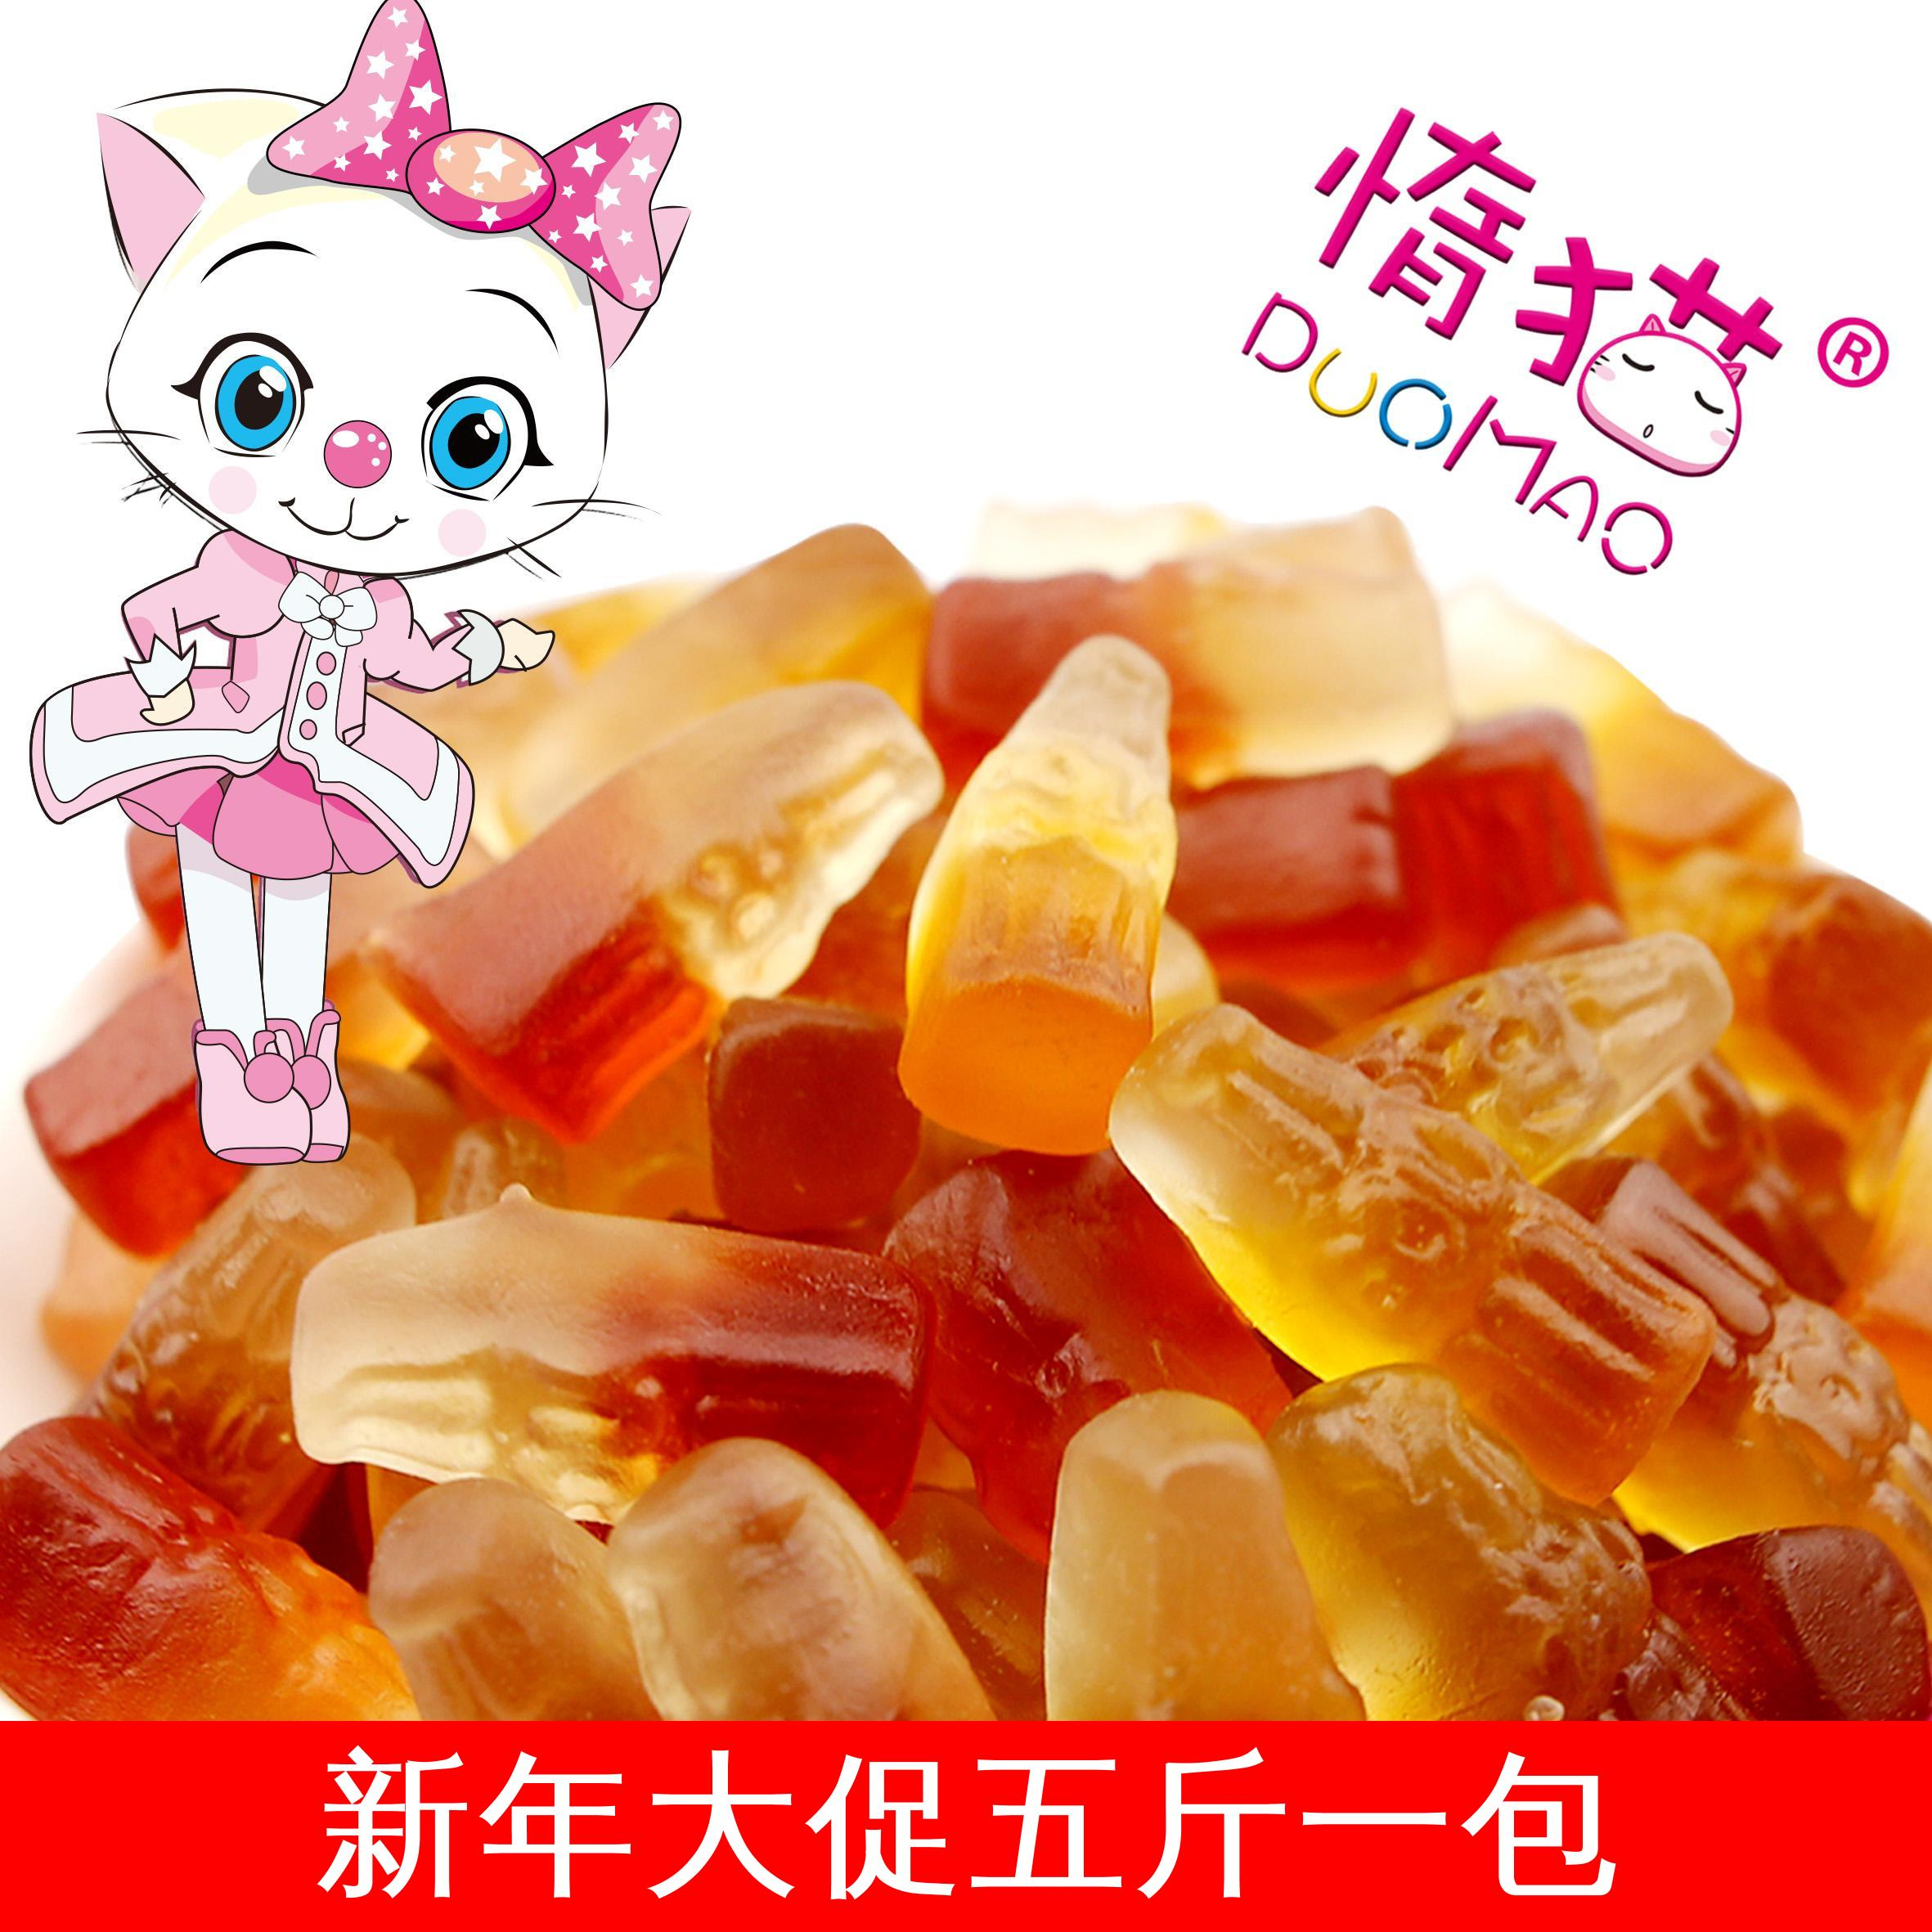 5kg bulk lazy cat gummy QQ syrup fruit candy color candy Coke bottles of various flavors